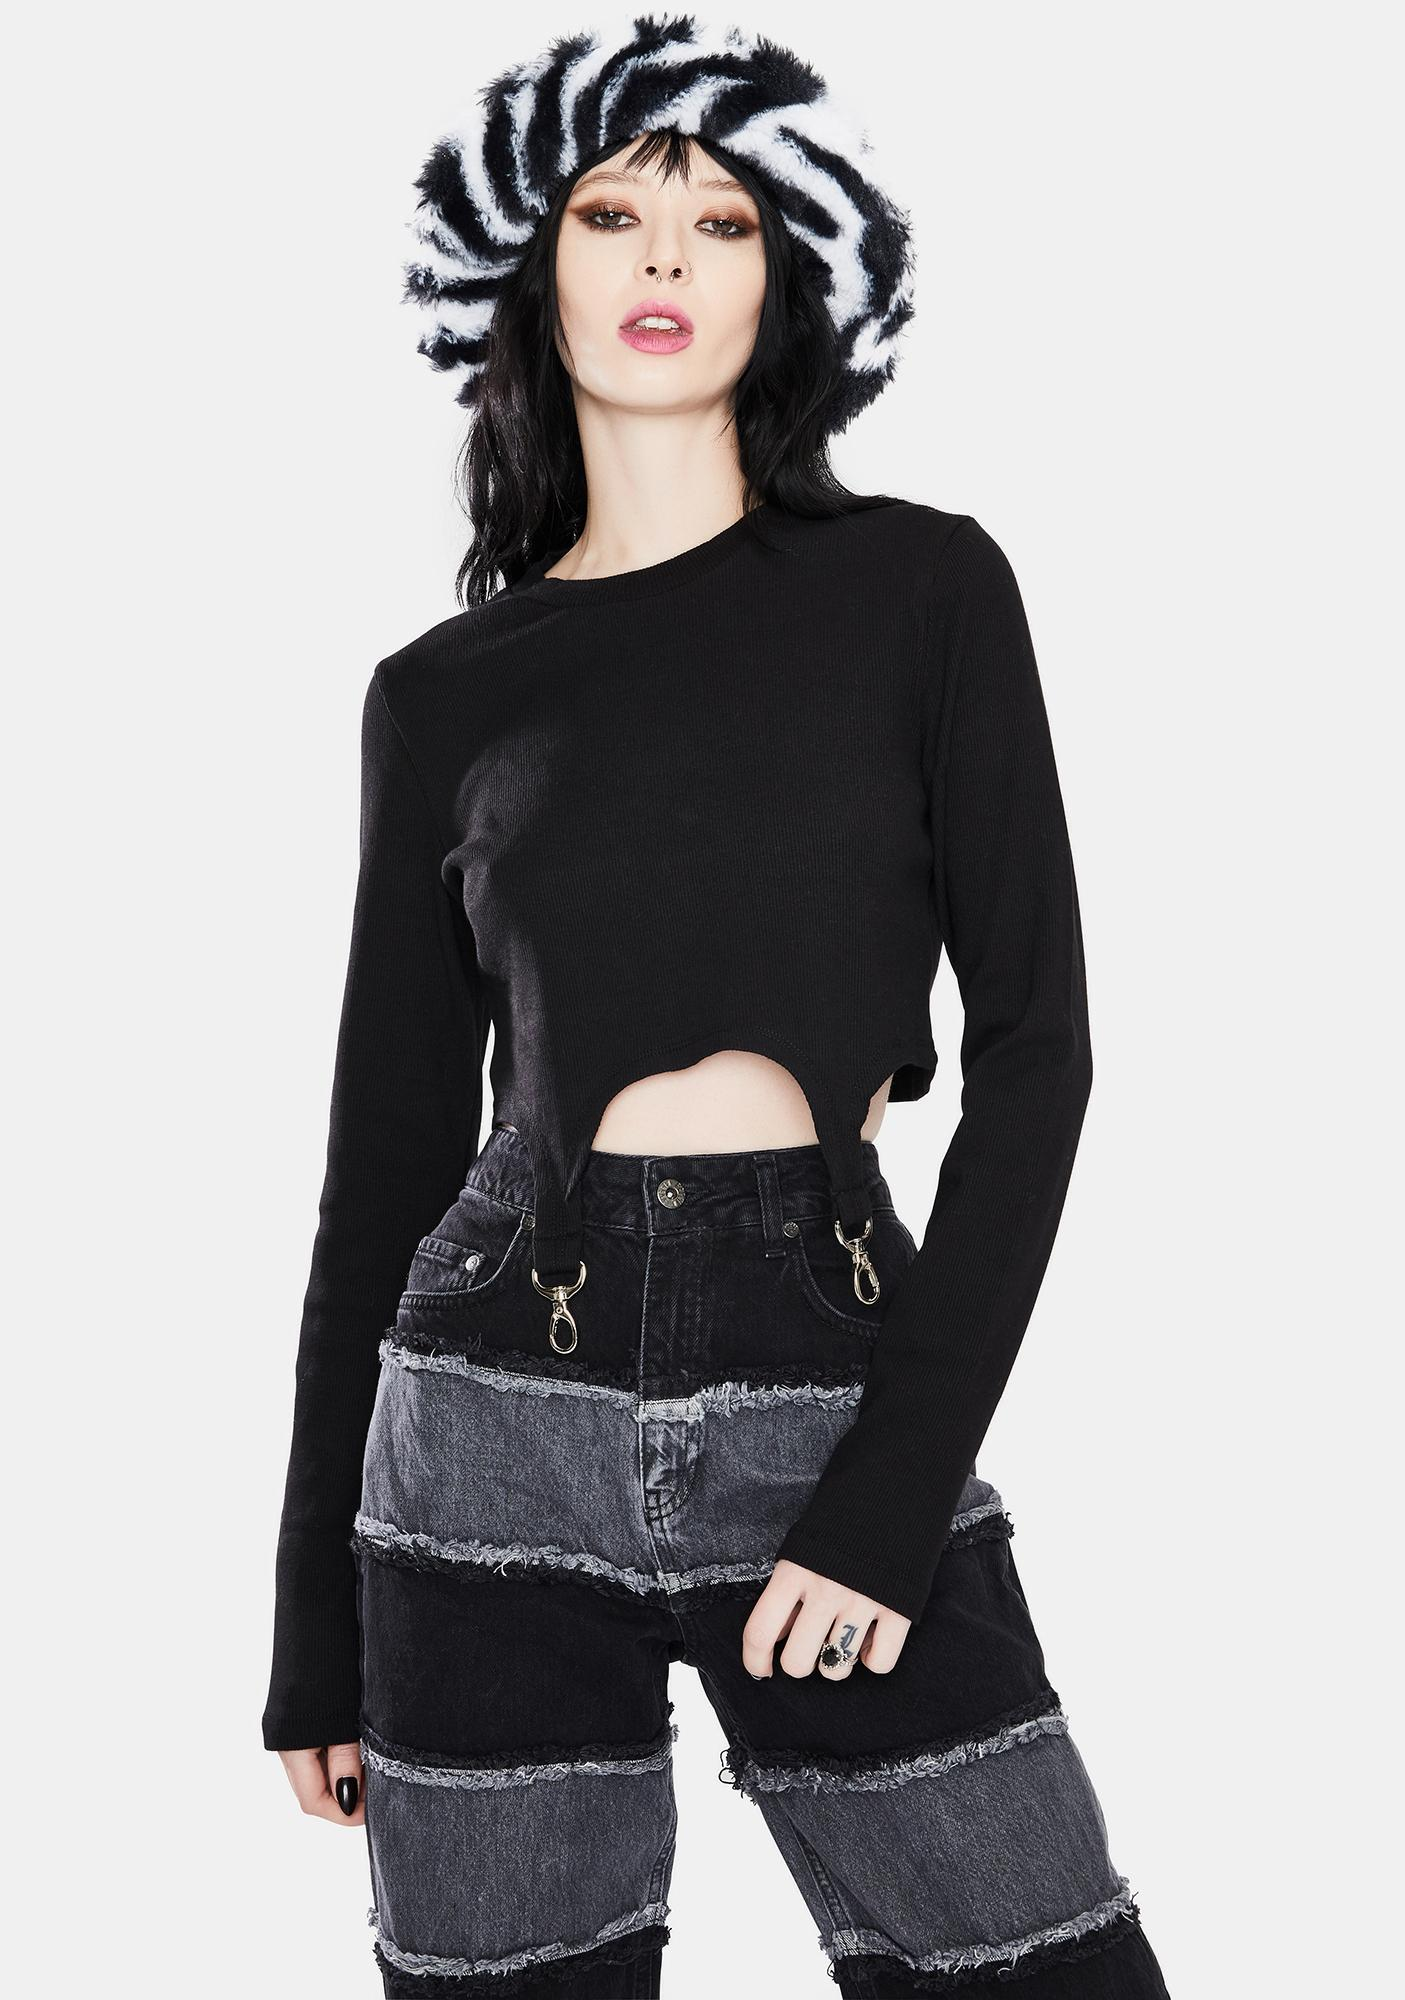 The Ragged Priest Veil Ringer Crop Top